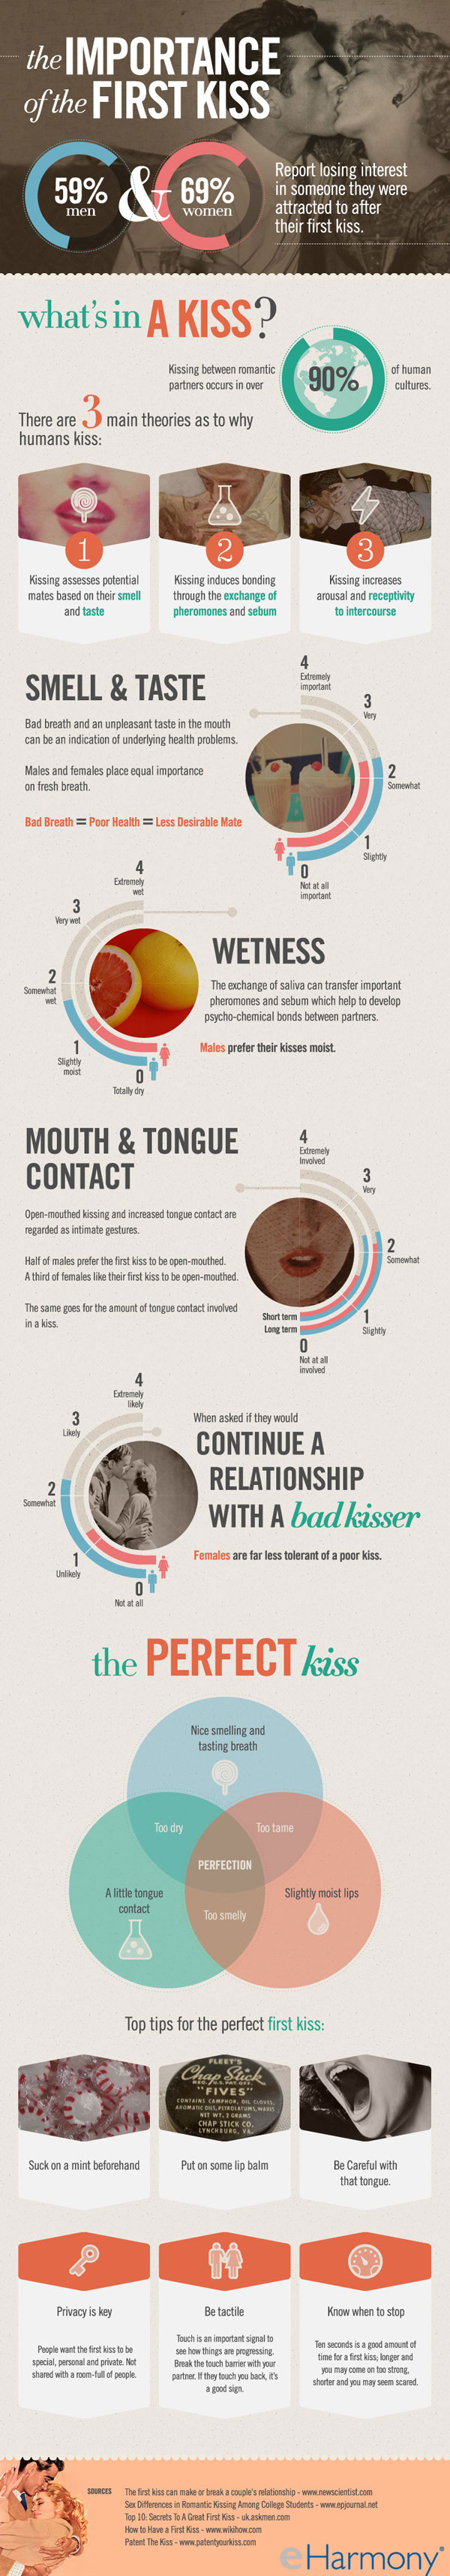 First Kiss Tips-Infographic